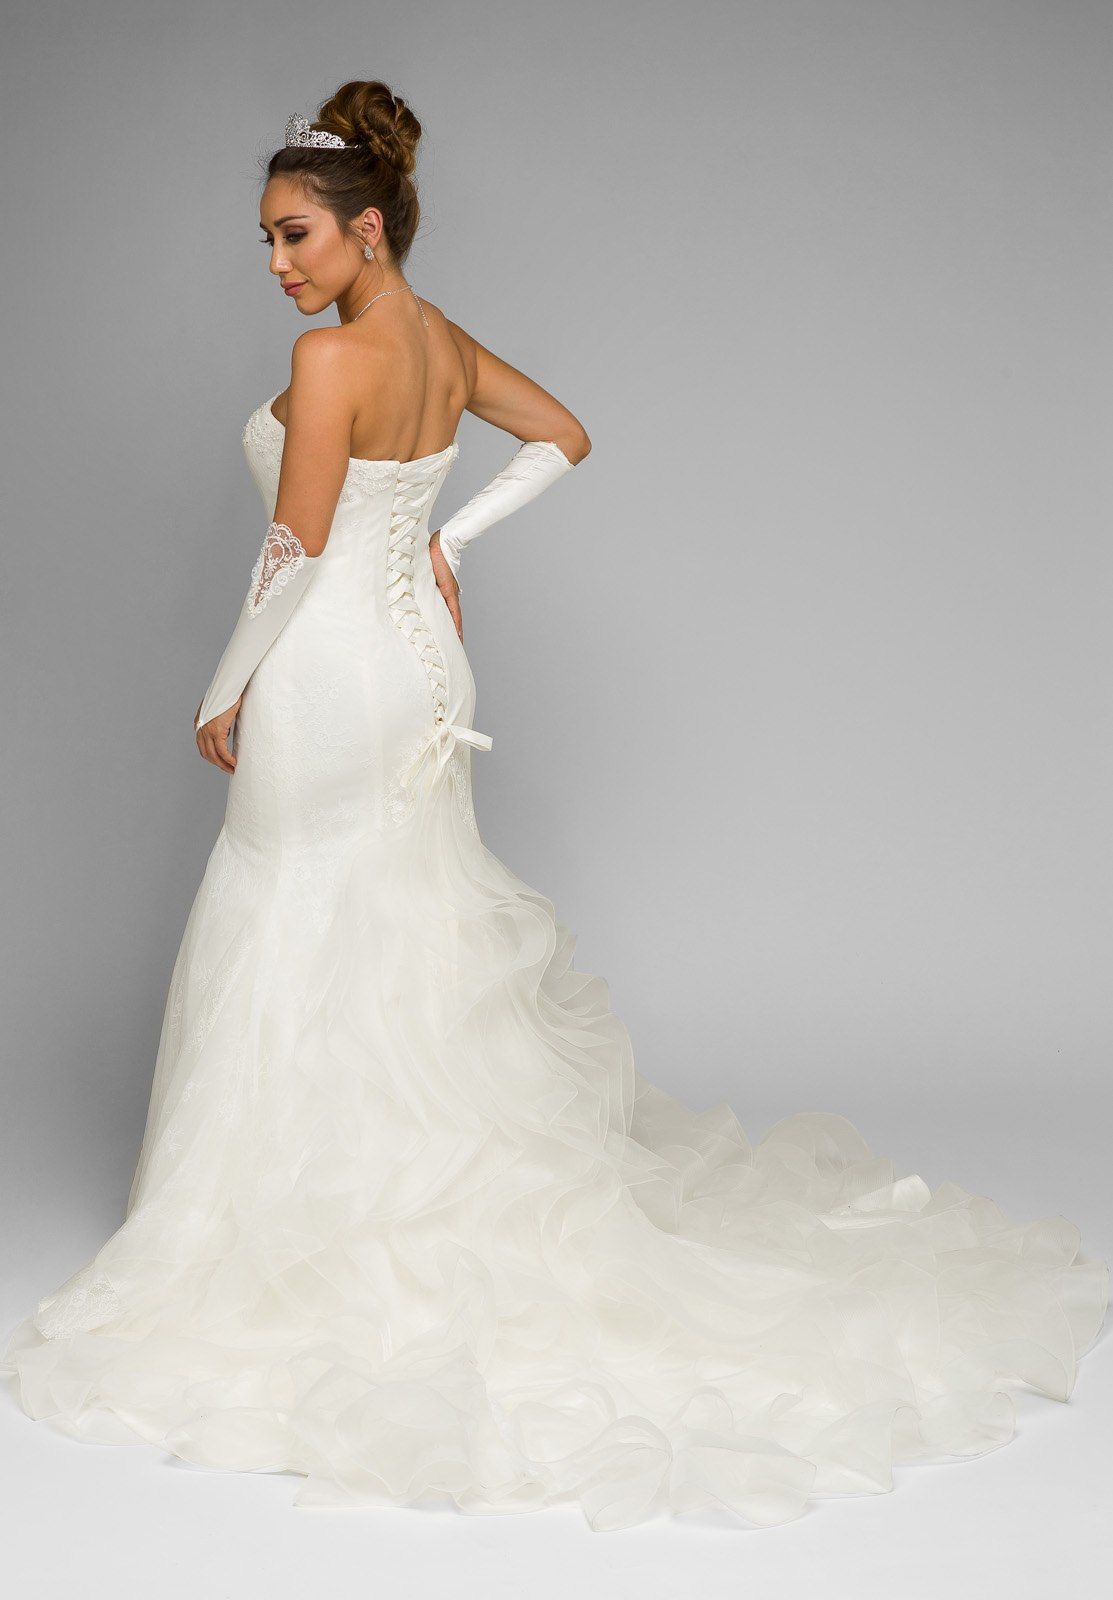 White Strapless Mermaid Wedding Gown with Ruffled Chapel Train ...